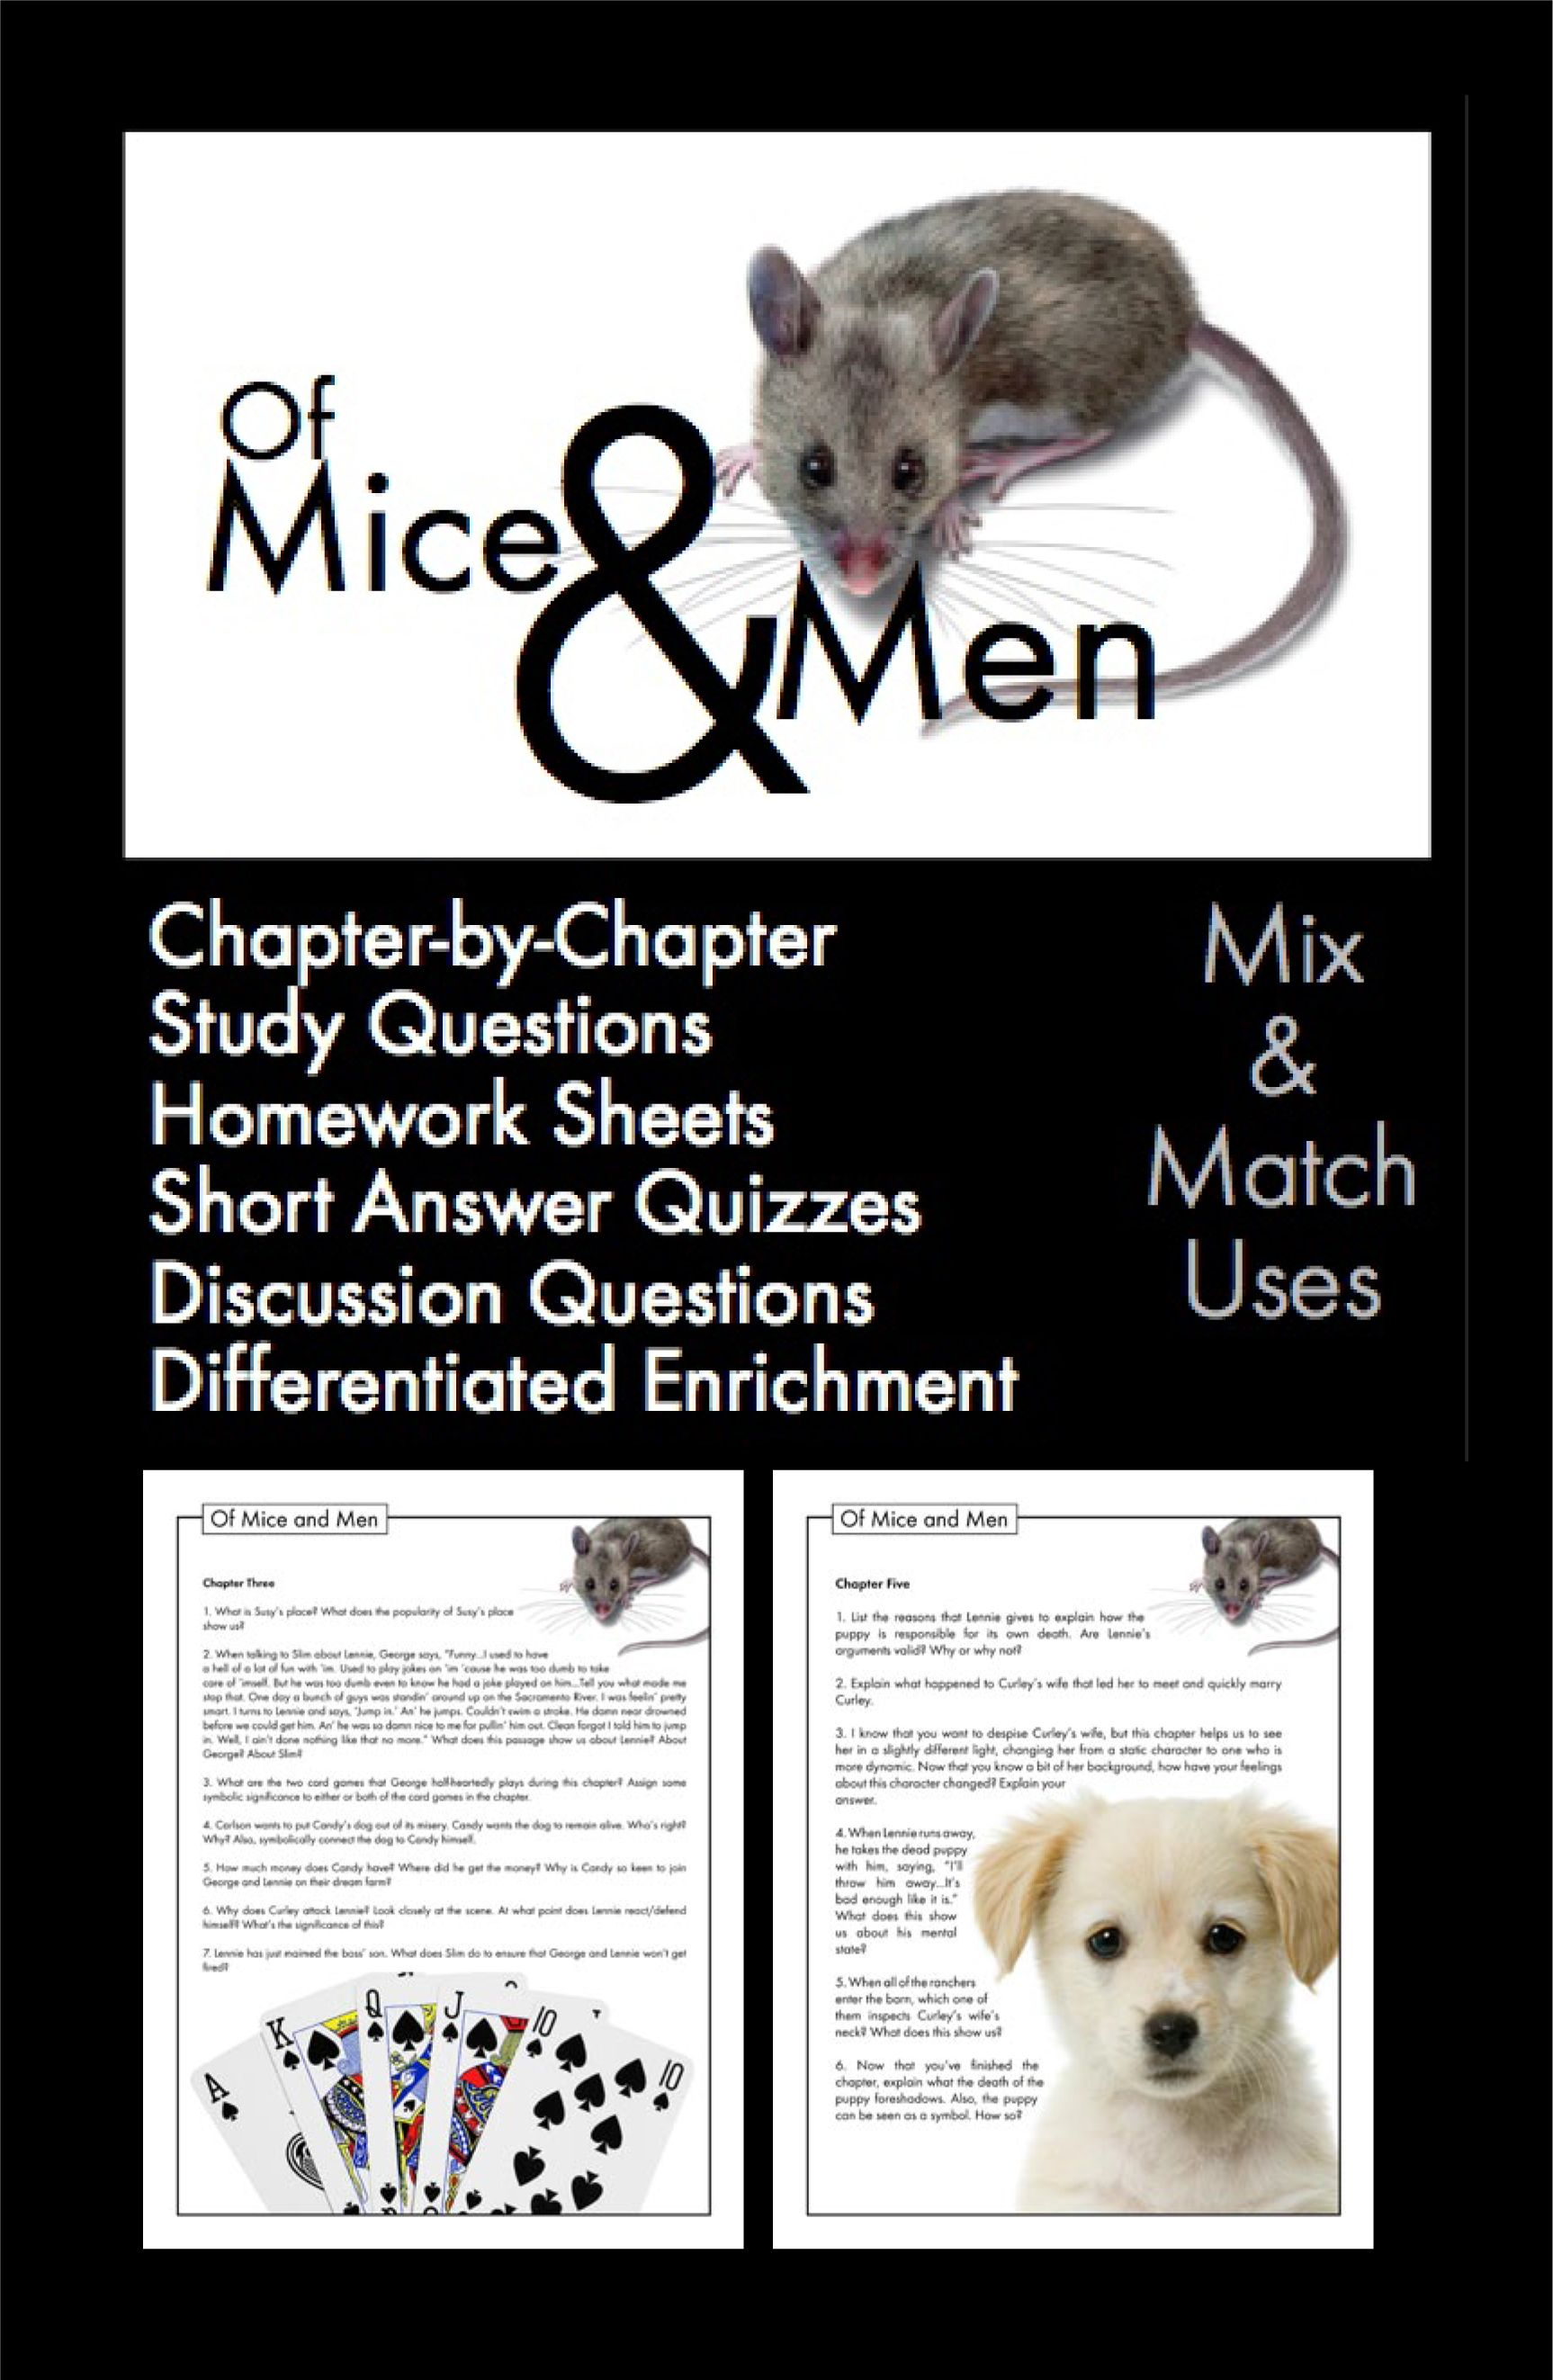 of mice and men essay questions wjec A secondary school revision resource for gcse english literature about a sample question for john steinbeck's of mice and men.